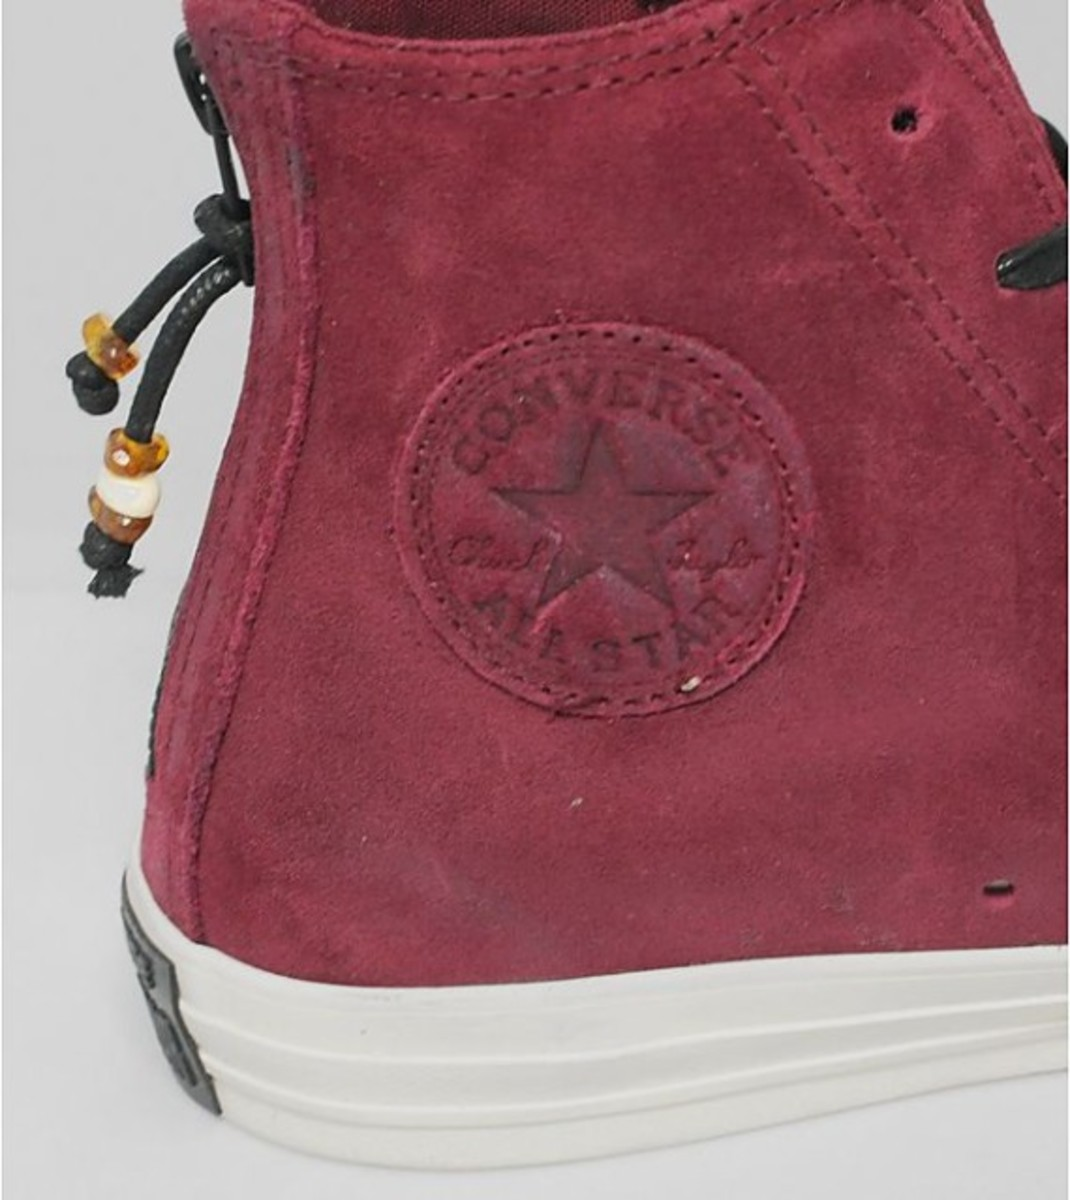 converse-chuck-taylor-burnished-17